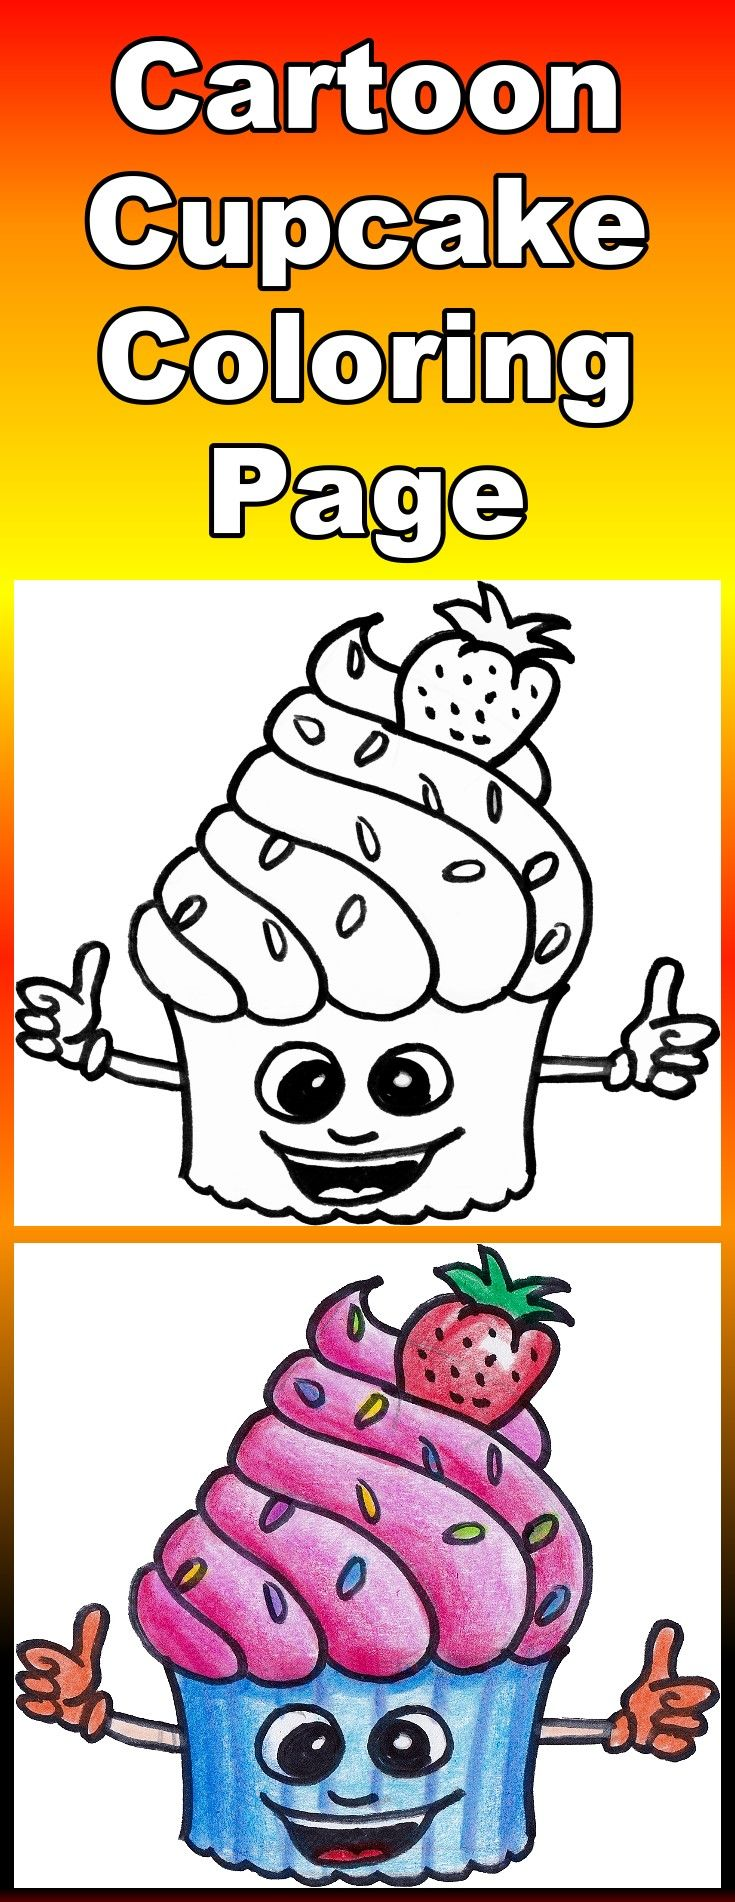 Free Coloring Page For Kids  Includes Downloadable Pdf And A Video Showing  How To Draw